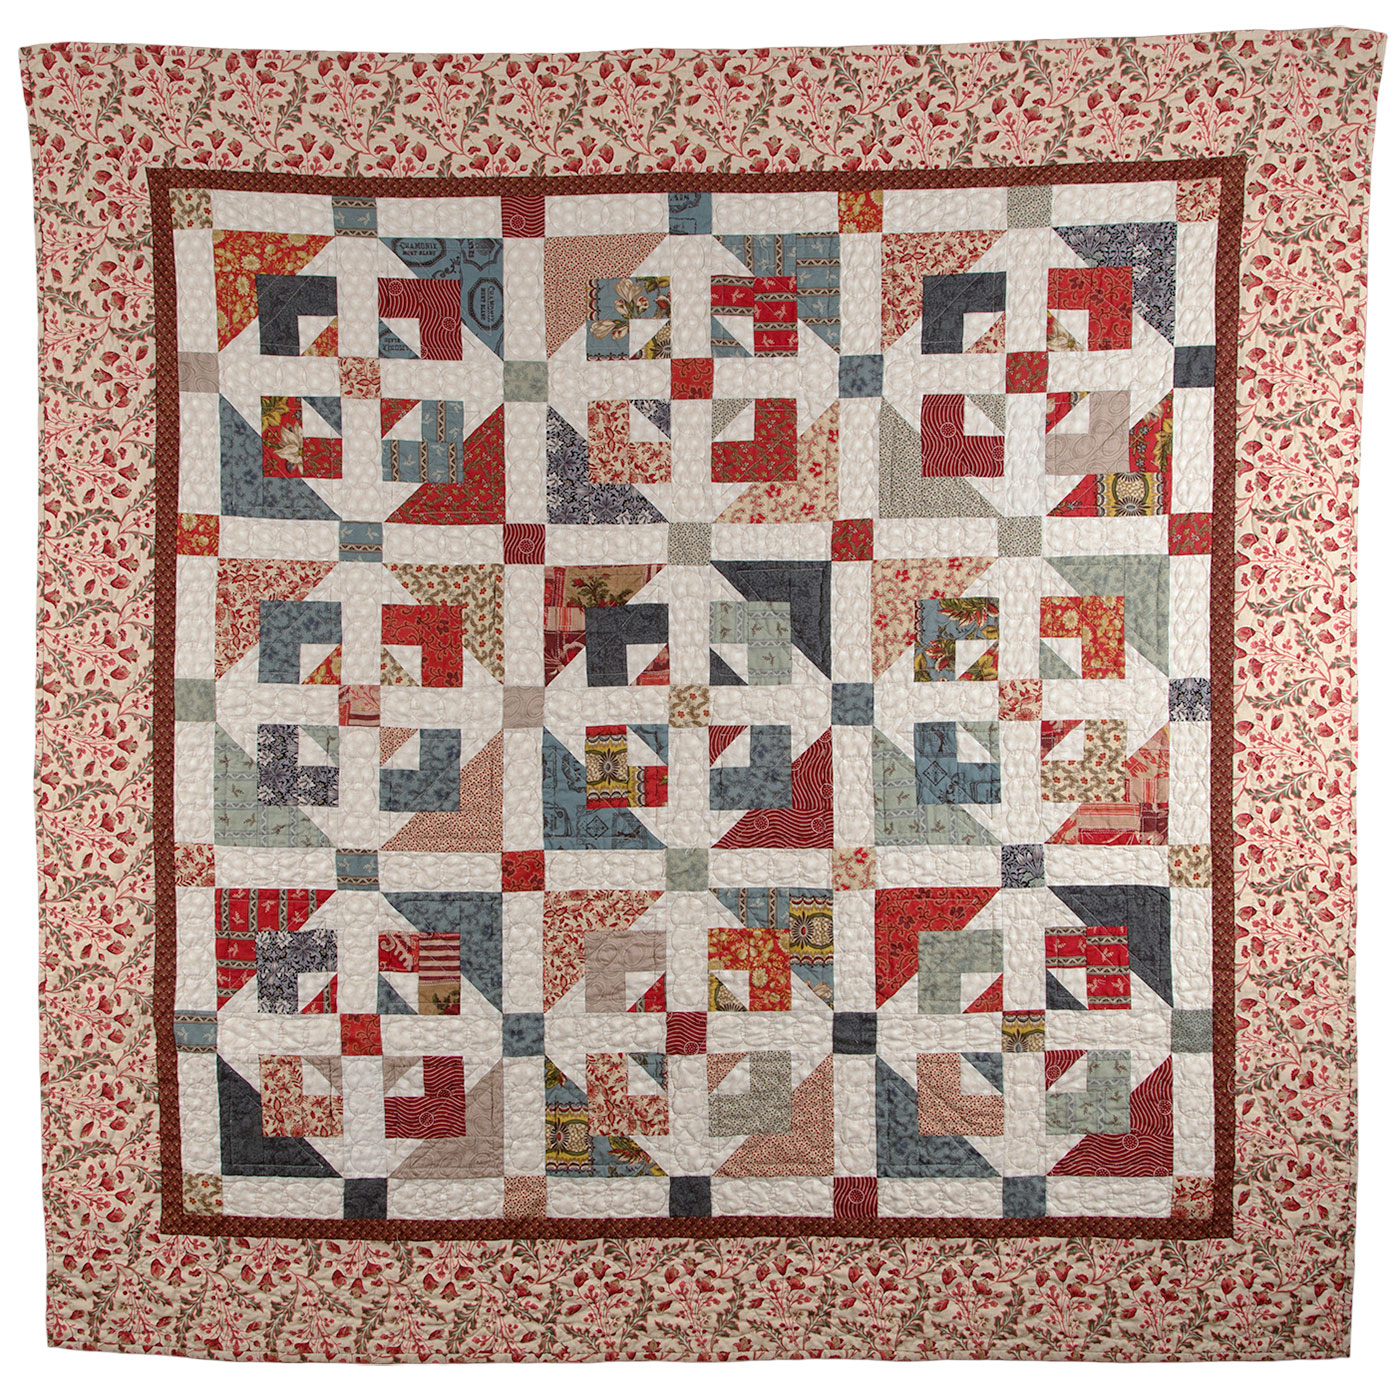 The Off-Kilter Quilt